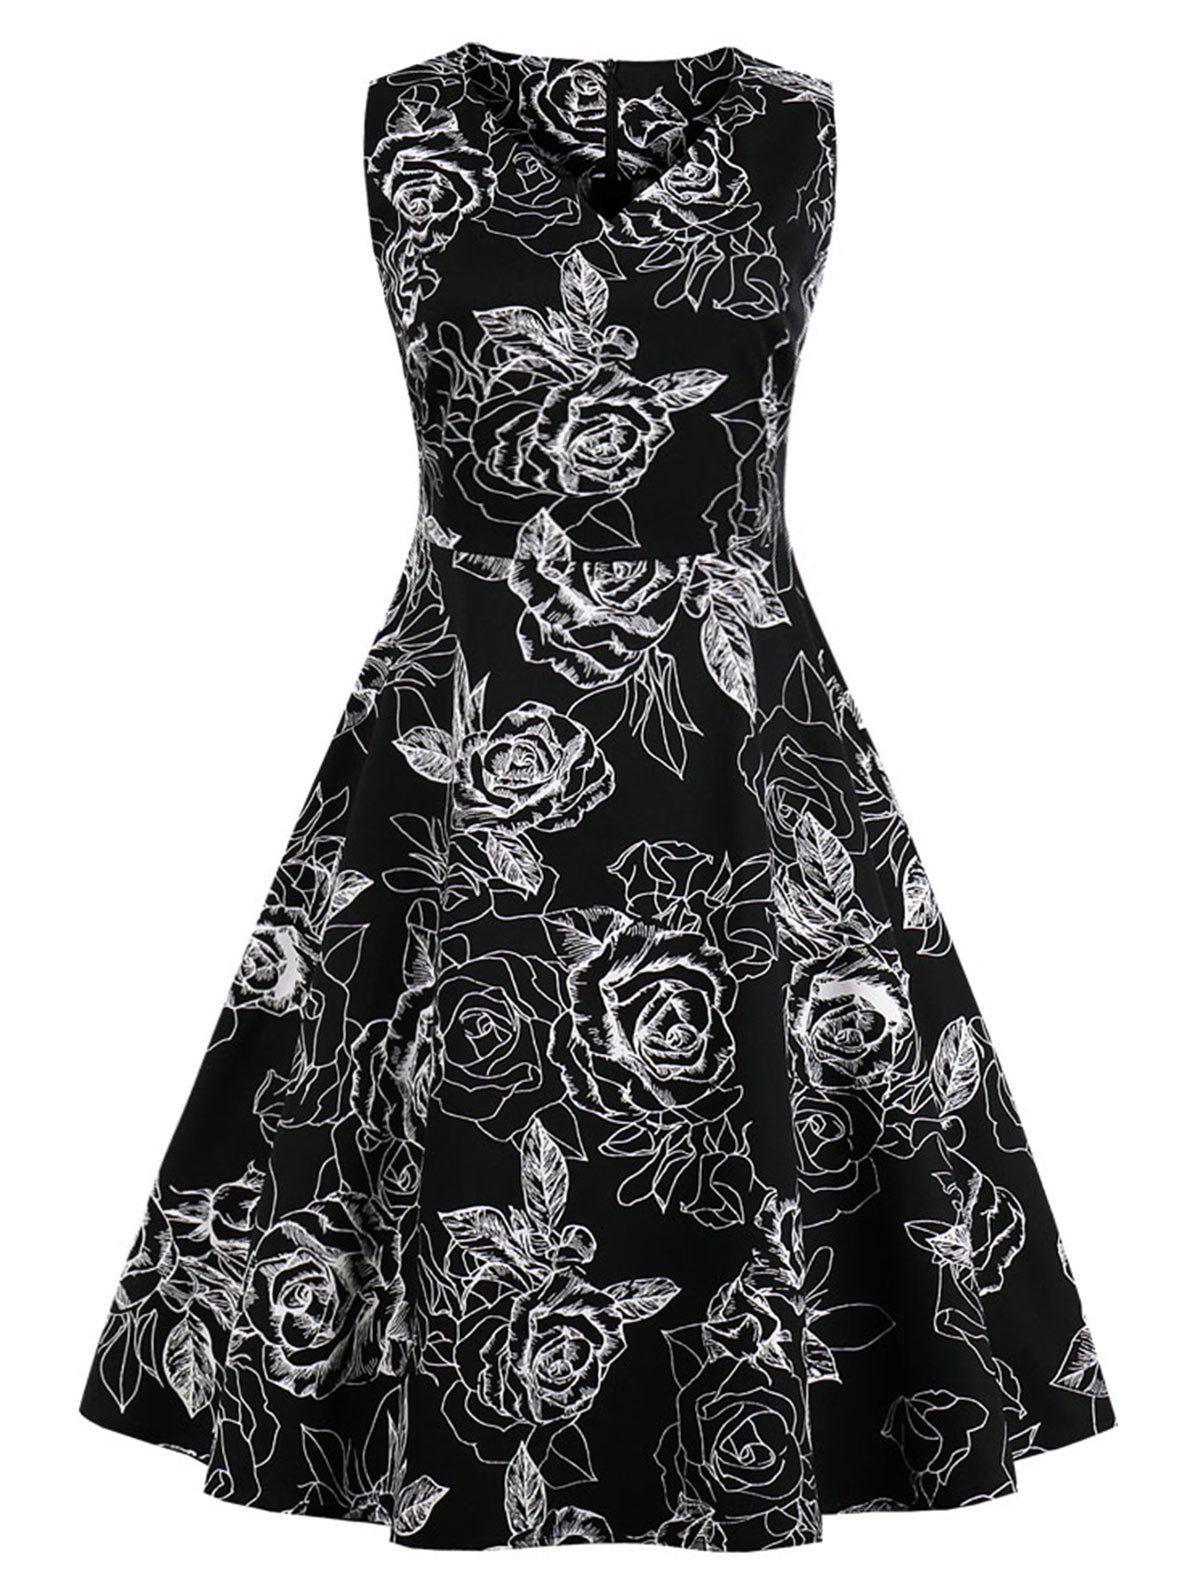 Plus Size Sleeveless Flower Dress - BLACK 4X